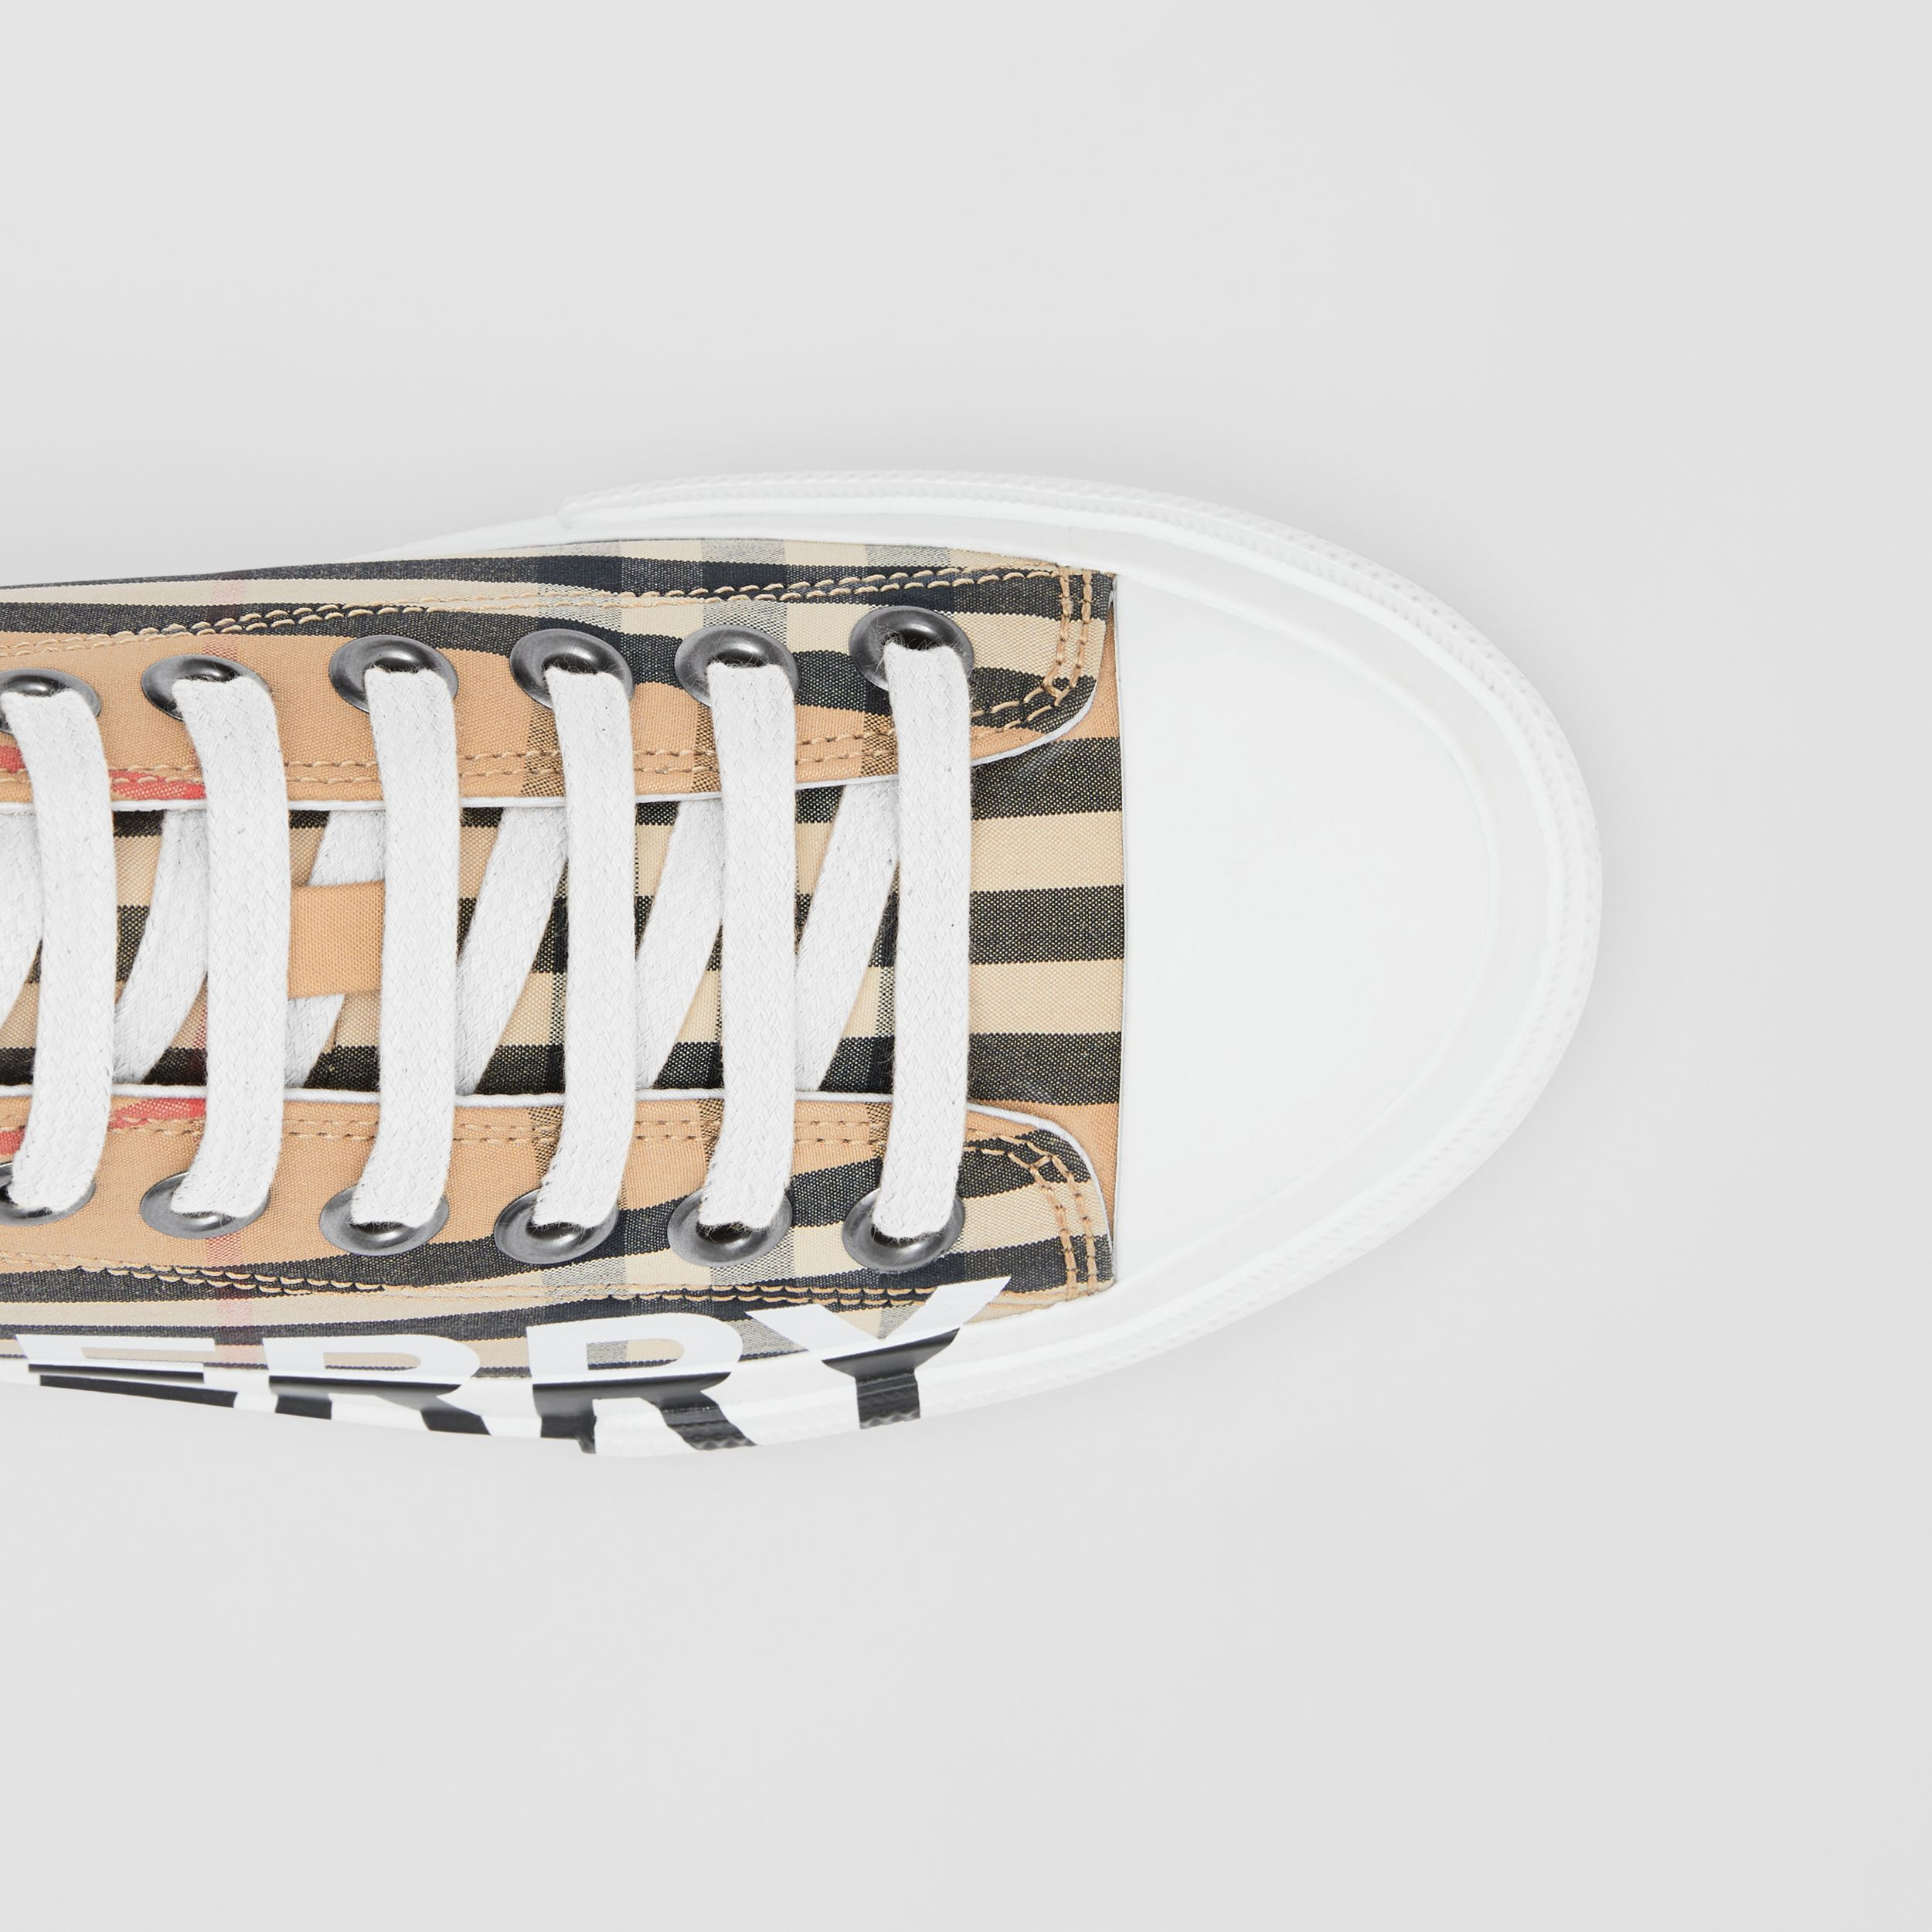 Logo Print Vintage Check Cotton Sneakers in Archive Beige - Women | Burberry - 2